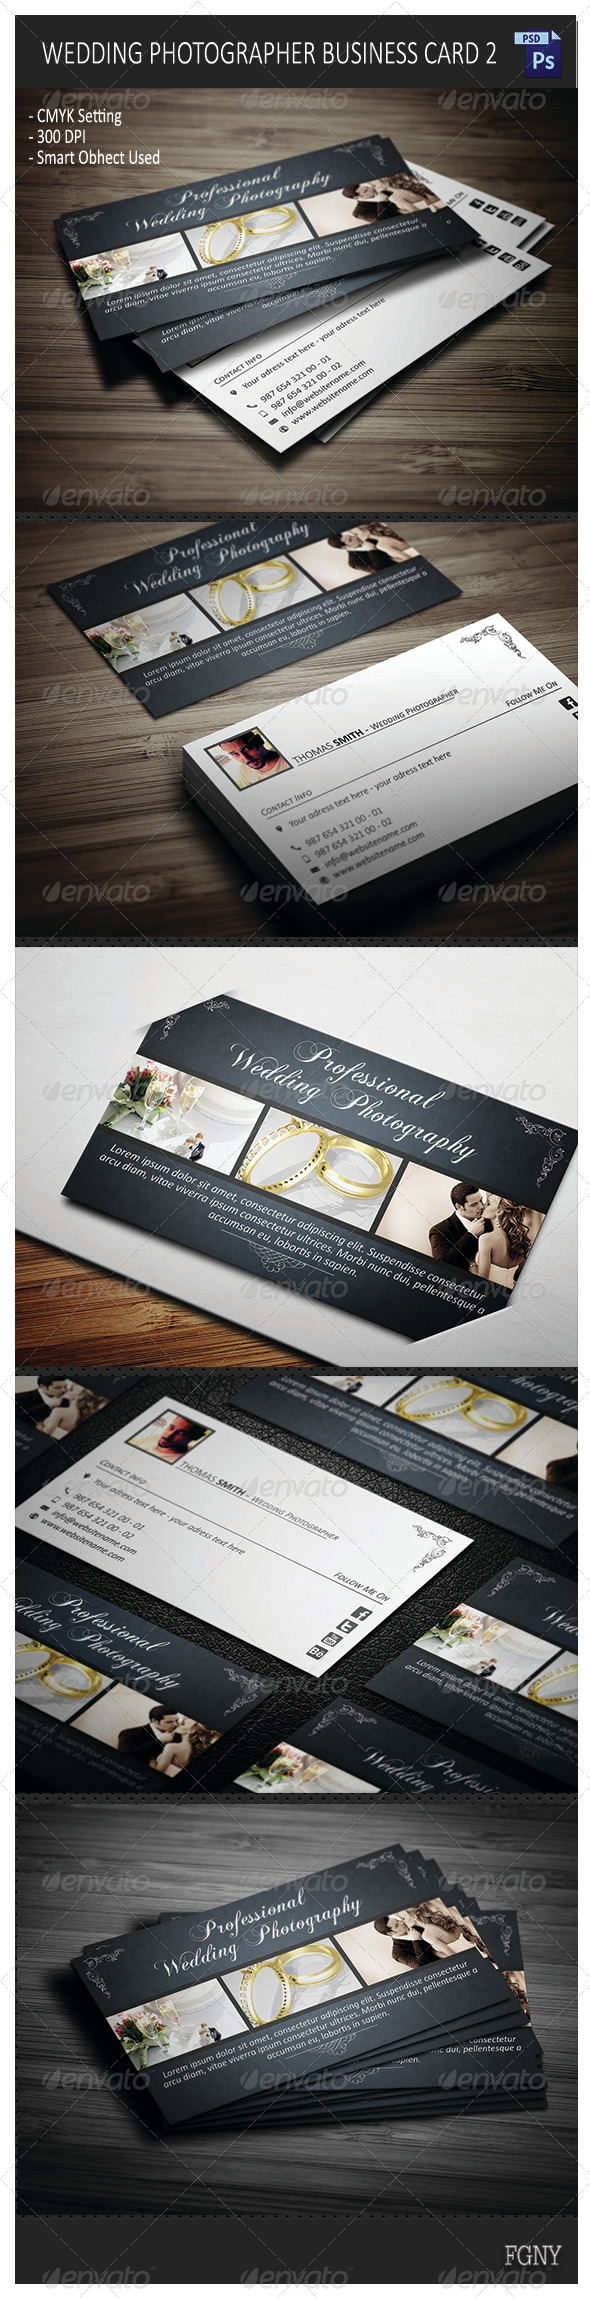 Wedding photographer business card 2 by yfguney graphicriver wedding photographer business card 2 corporate business cards reheart Choice Image